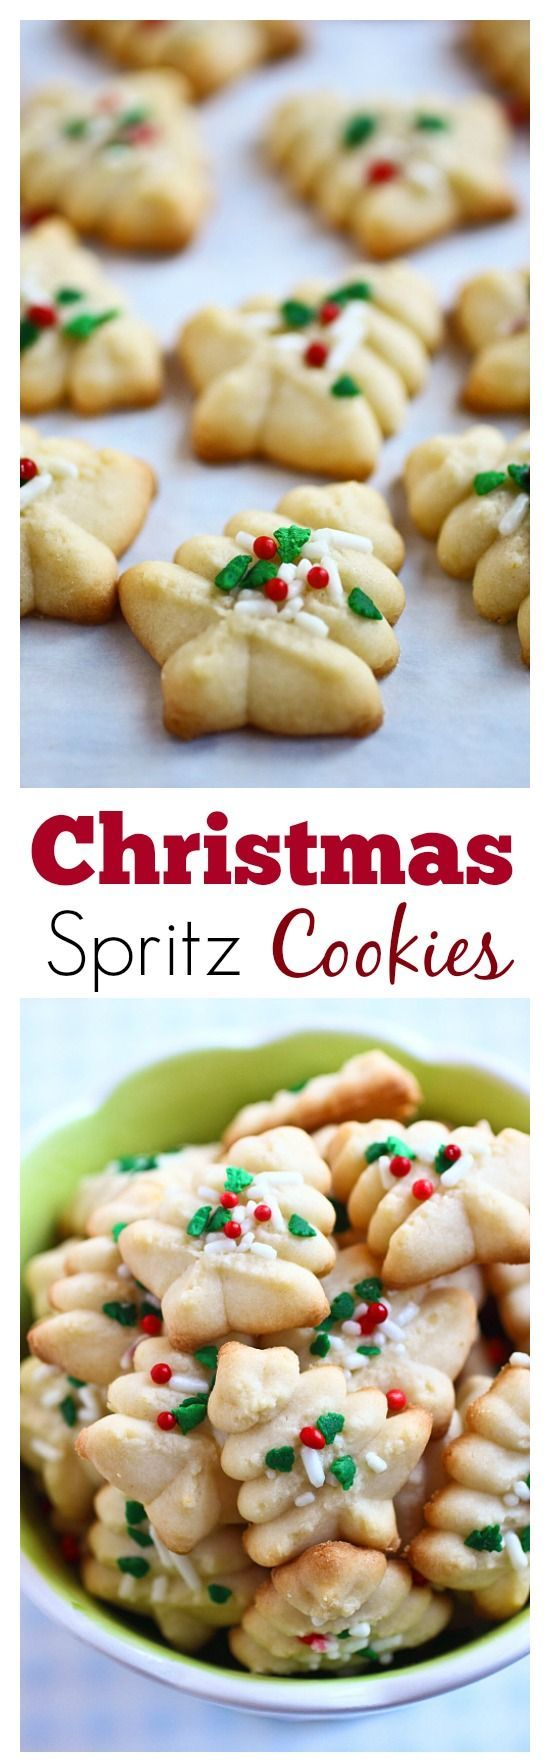 Spritz Cookies – BEST, buttery, melt-in-your-mouth crumbliest Christmas Spritz cookies ever! Super easy recipe that anyone can bake this holiday season   rasamalaysia.com